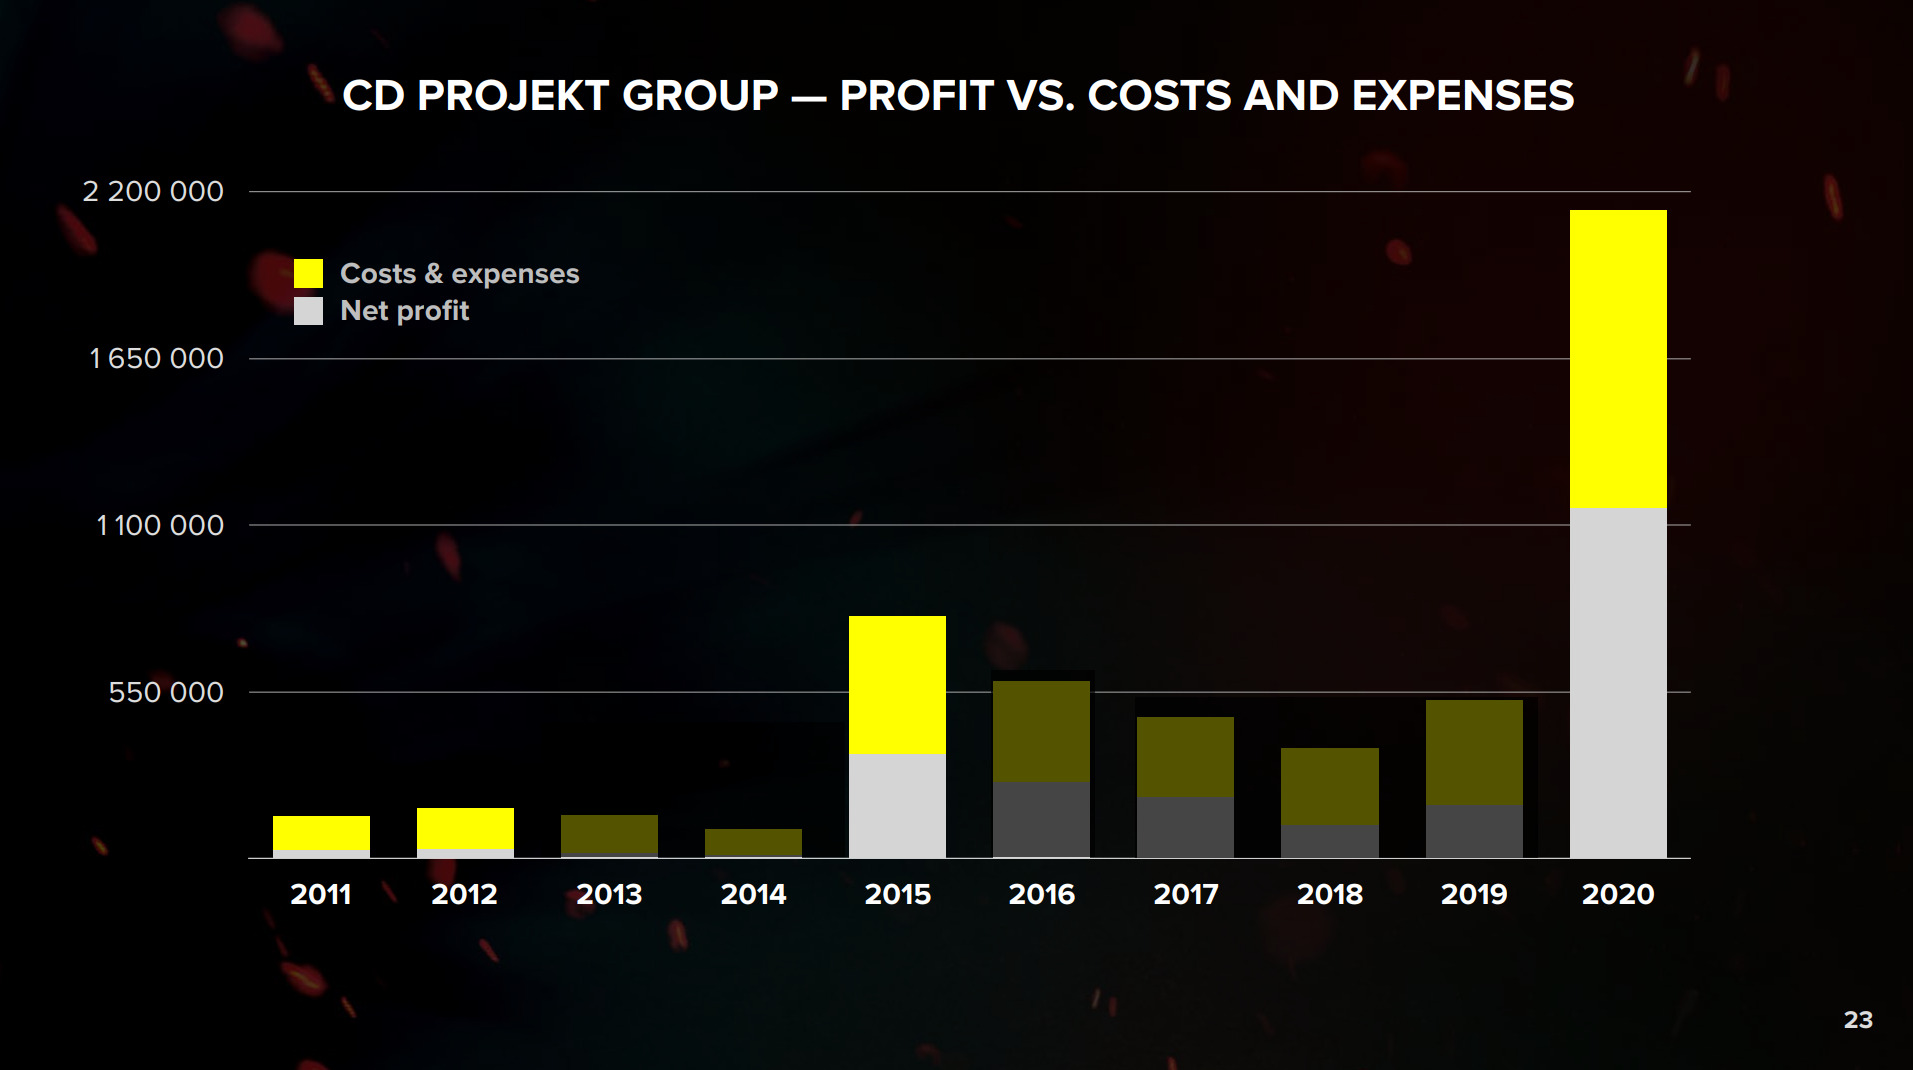 Profit Vs Cost and Expenses